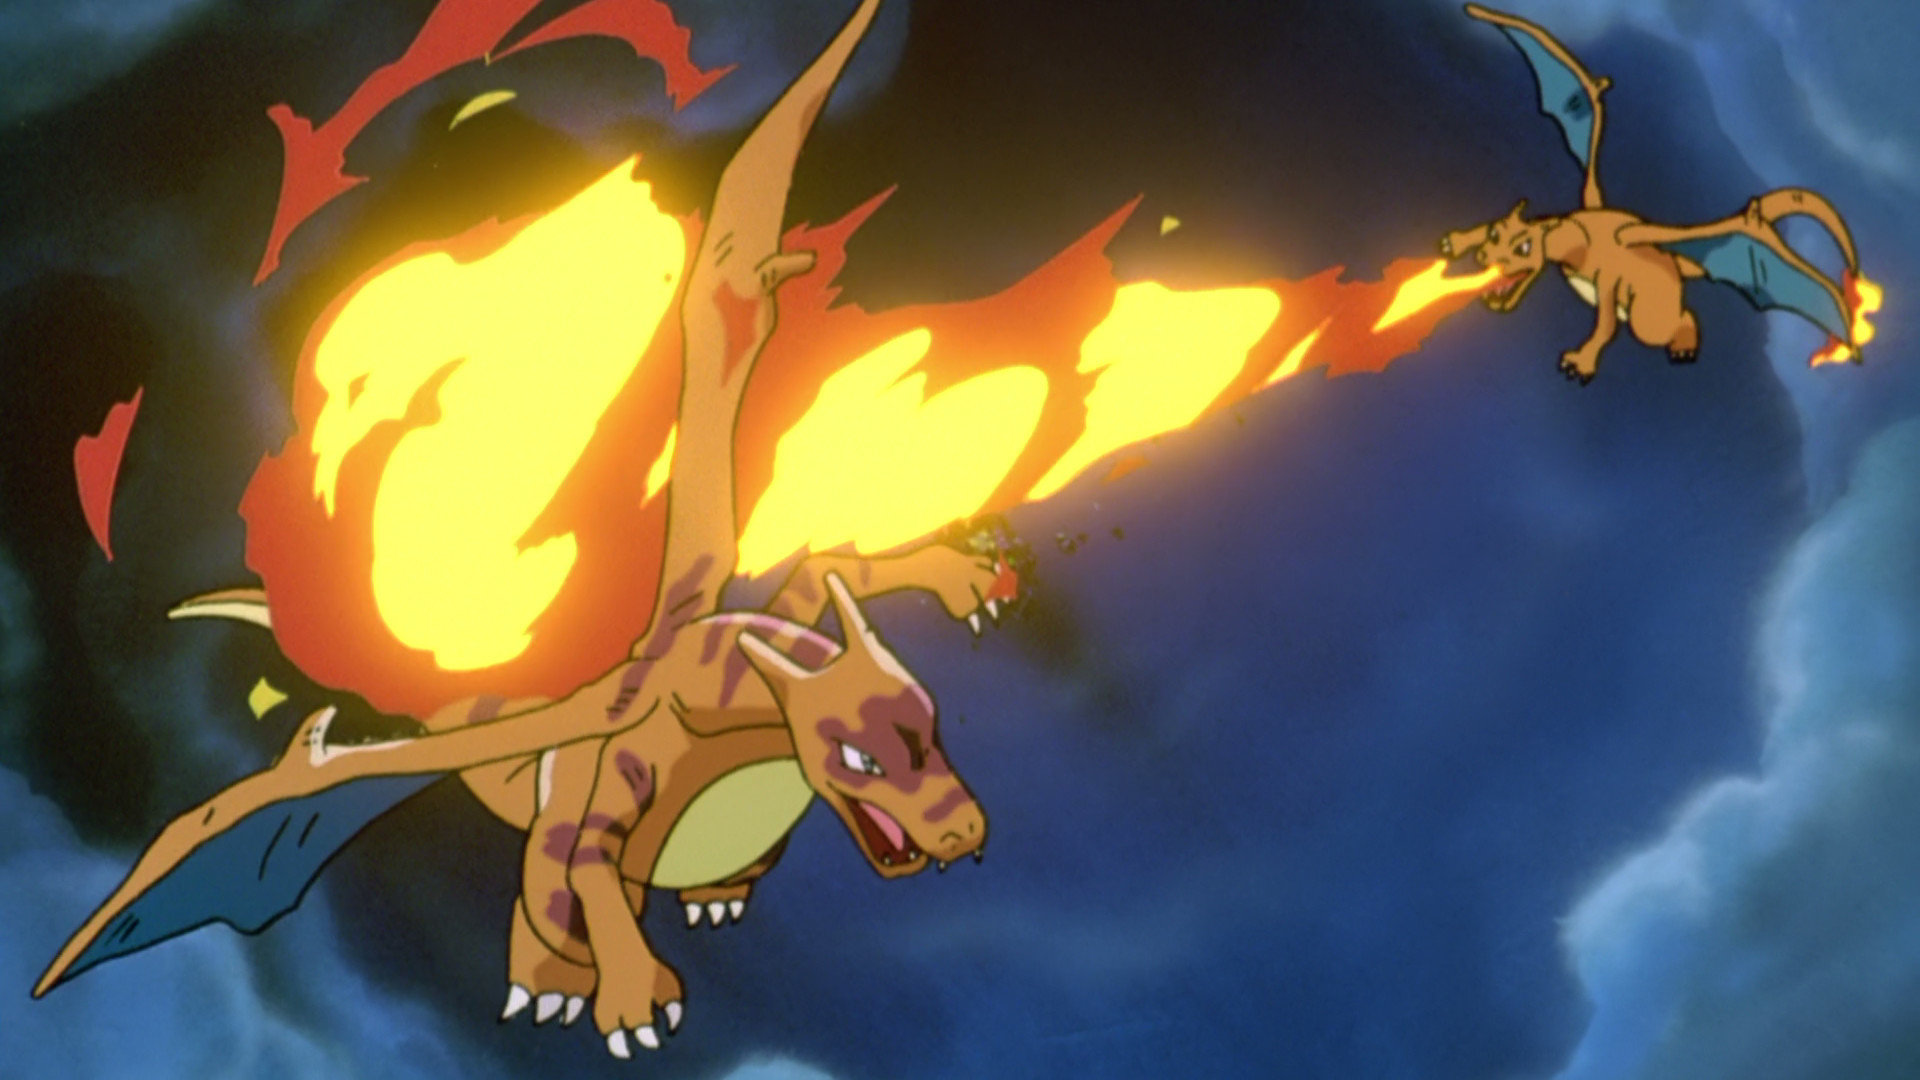 Download hd 1920x1080 Charizard (Pokemon) PC background ID:279217 for free